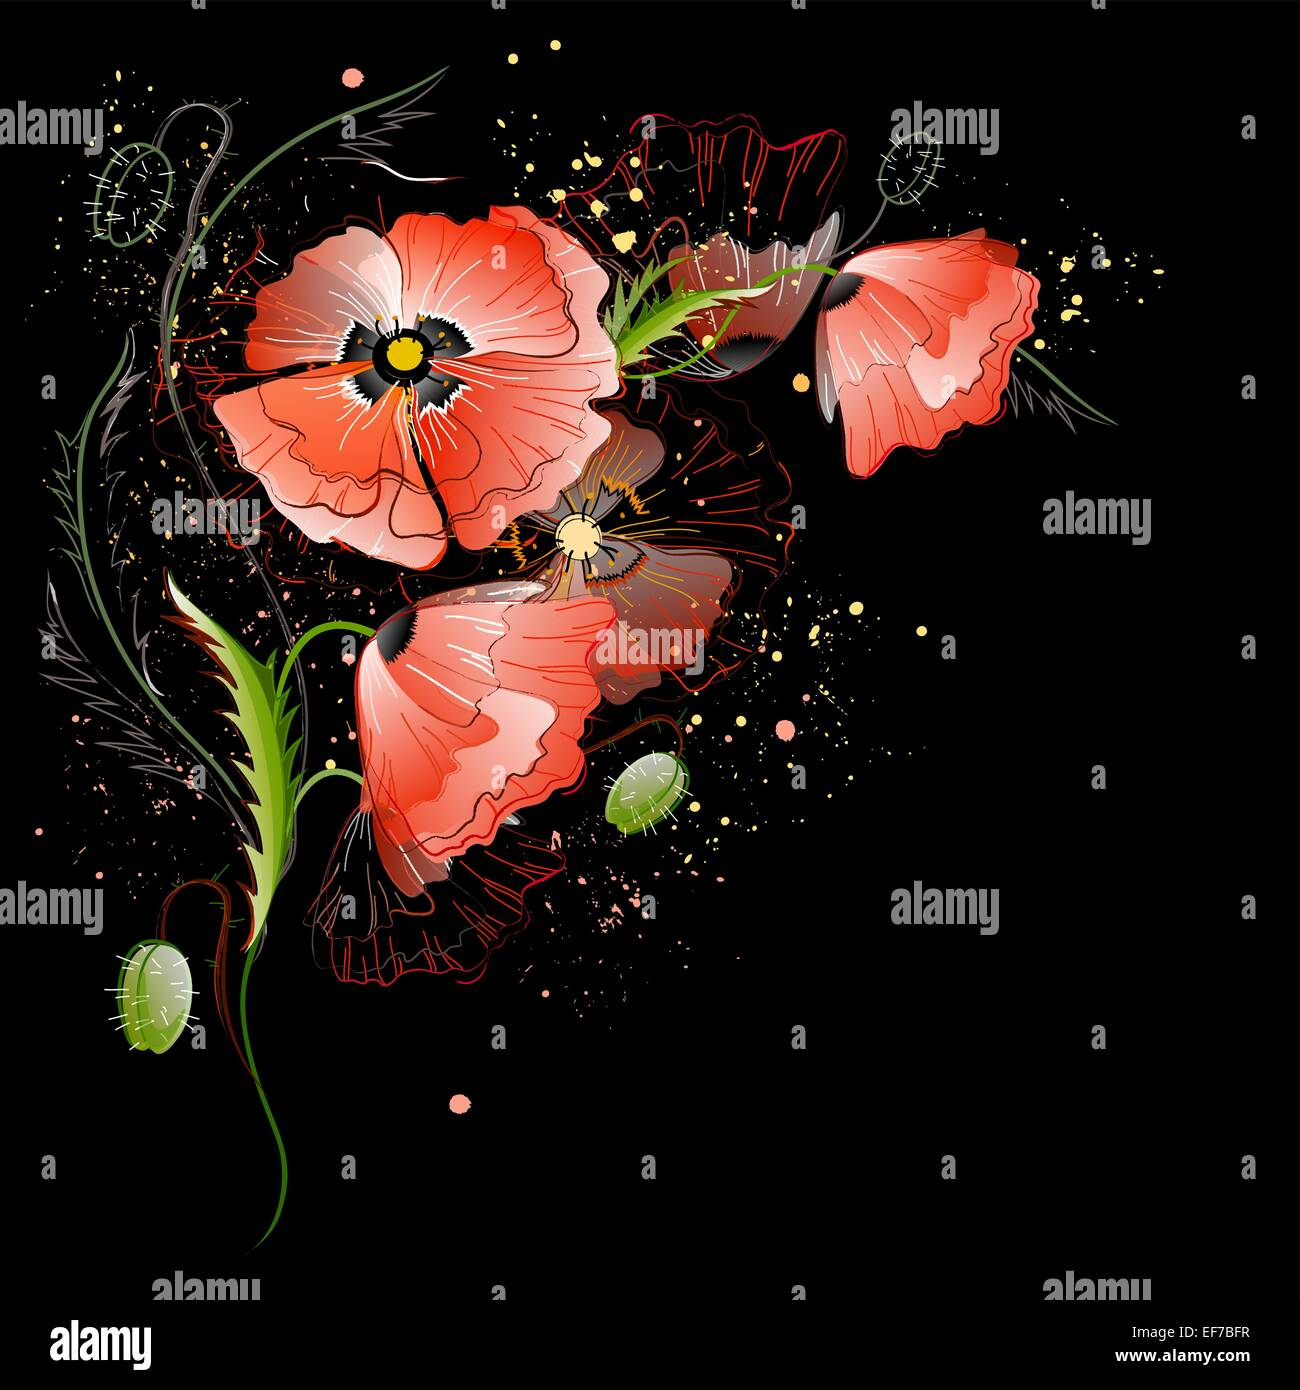 Vector black greeting card with red gentle poppy flowers - Stock Vector